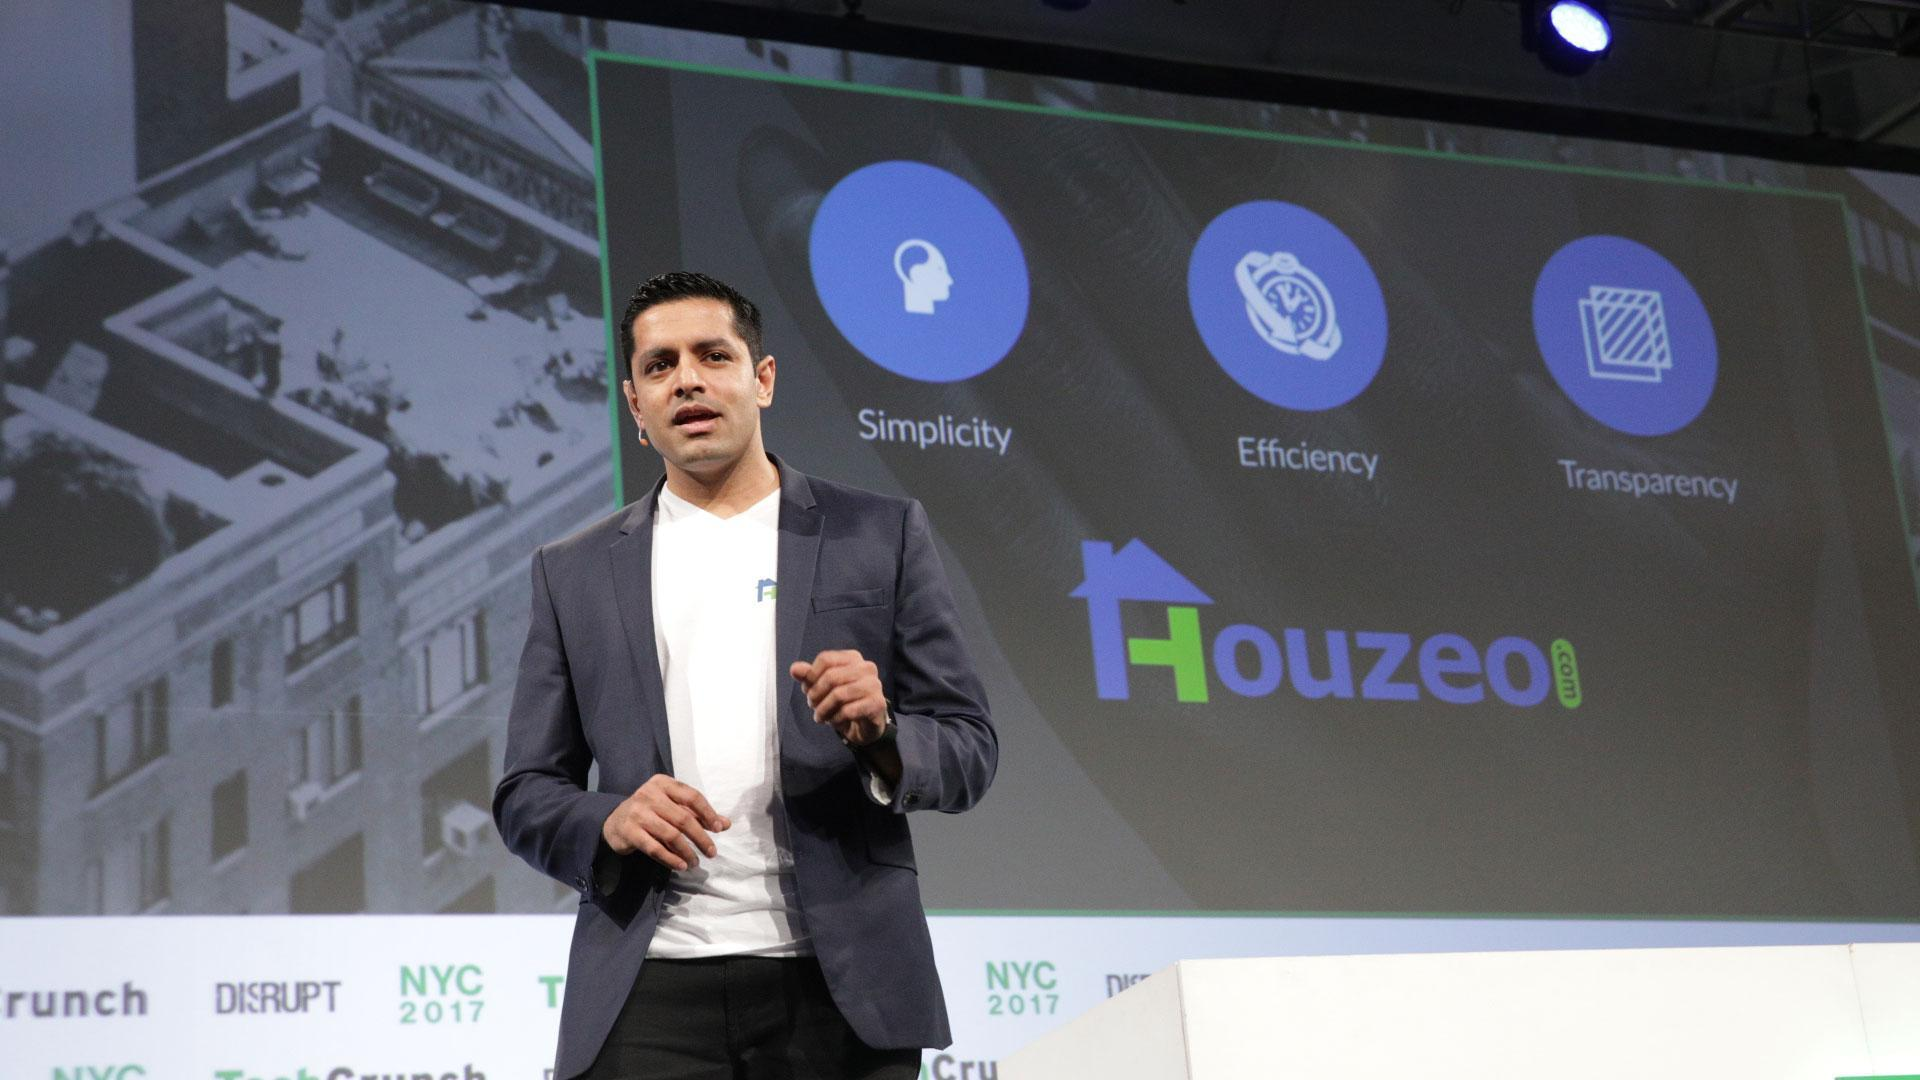 Houzeo Simplifies Real Estate